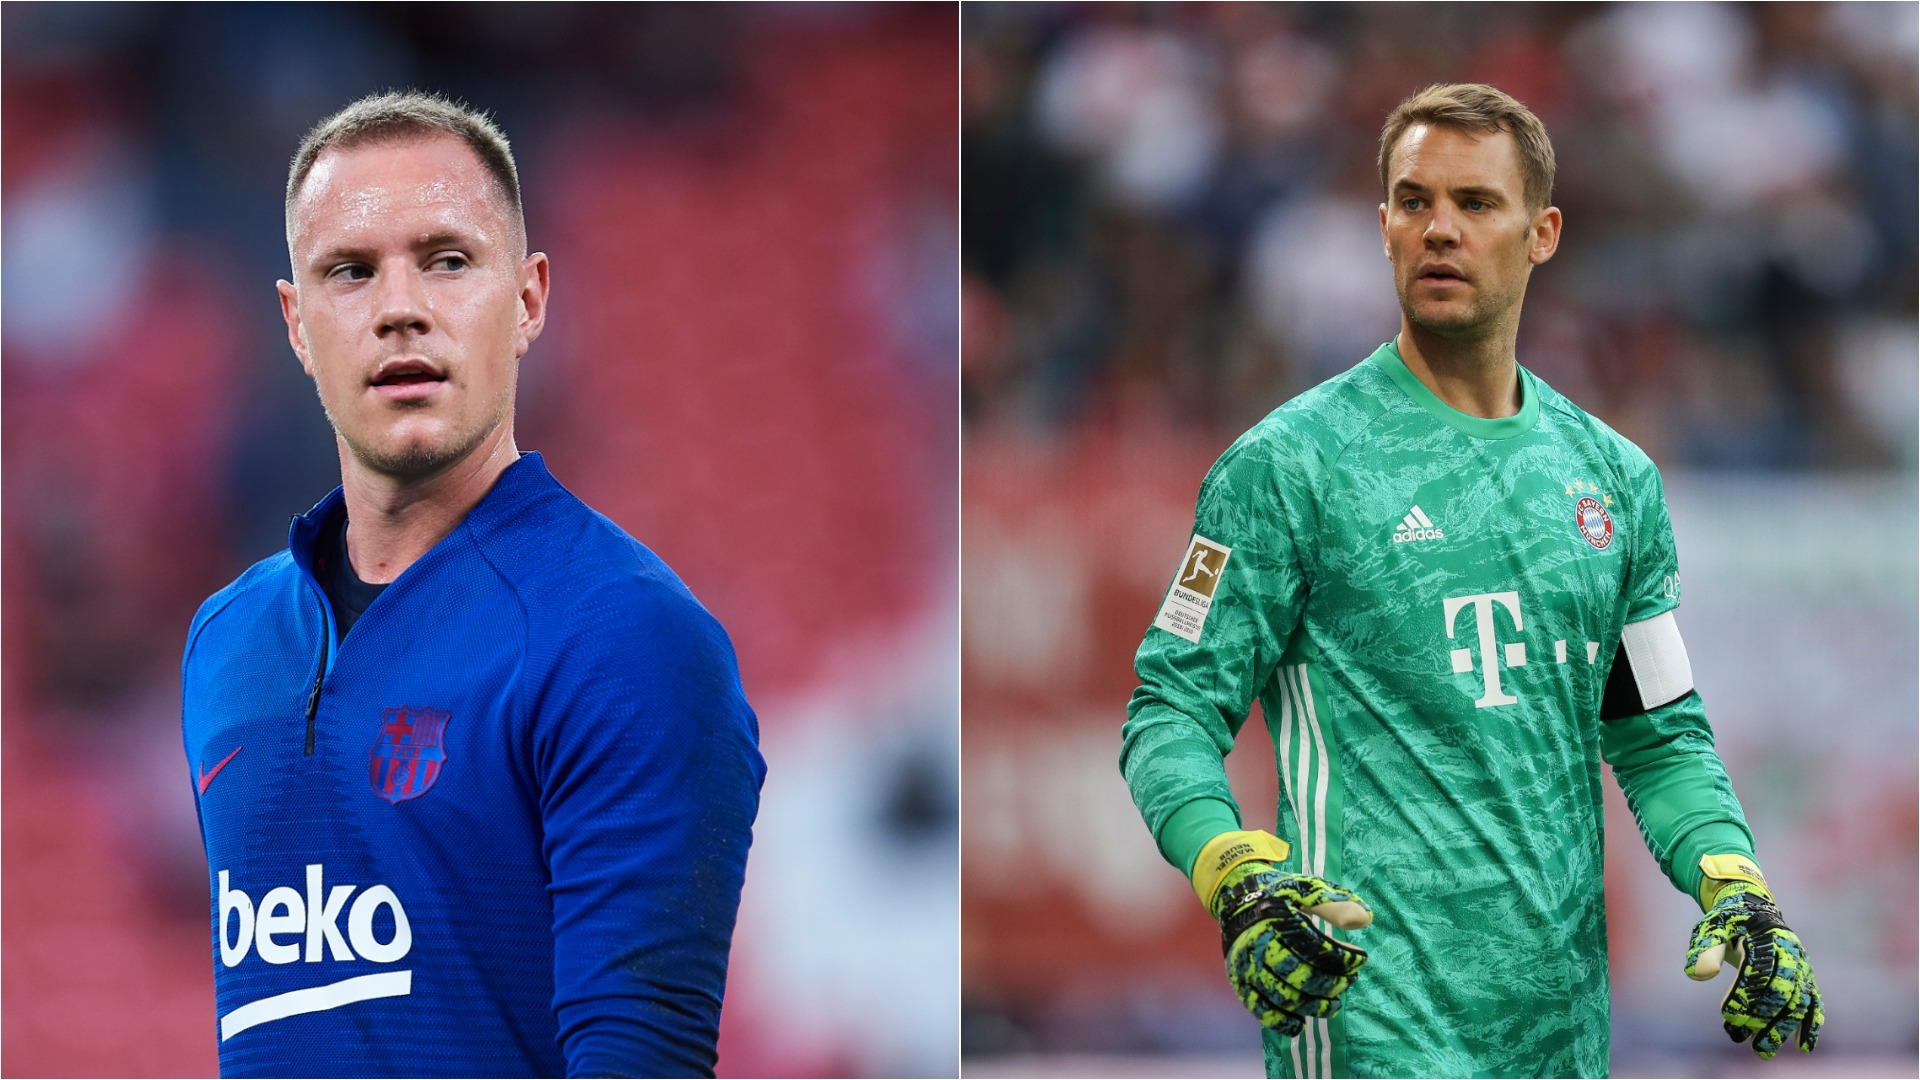 Ter Stegen hits back at Neuer for 'inappropriate' Germany comments